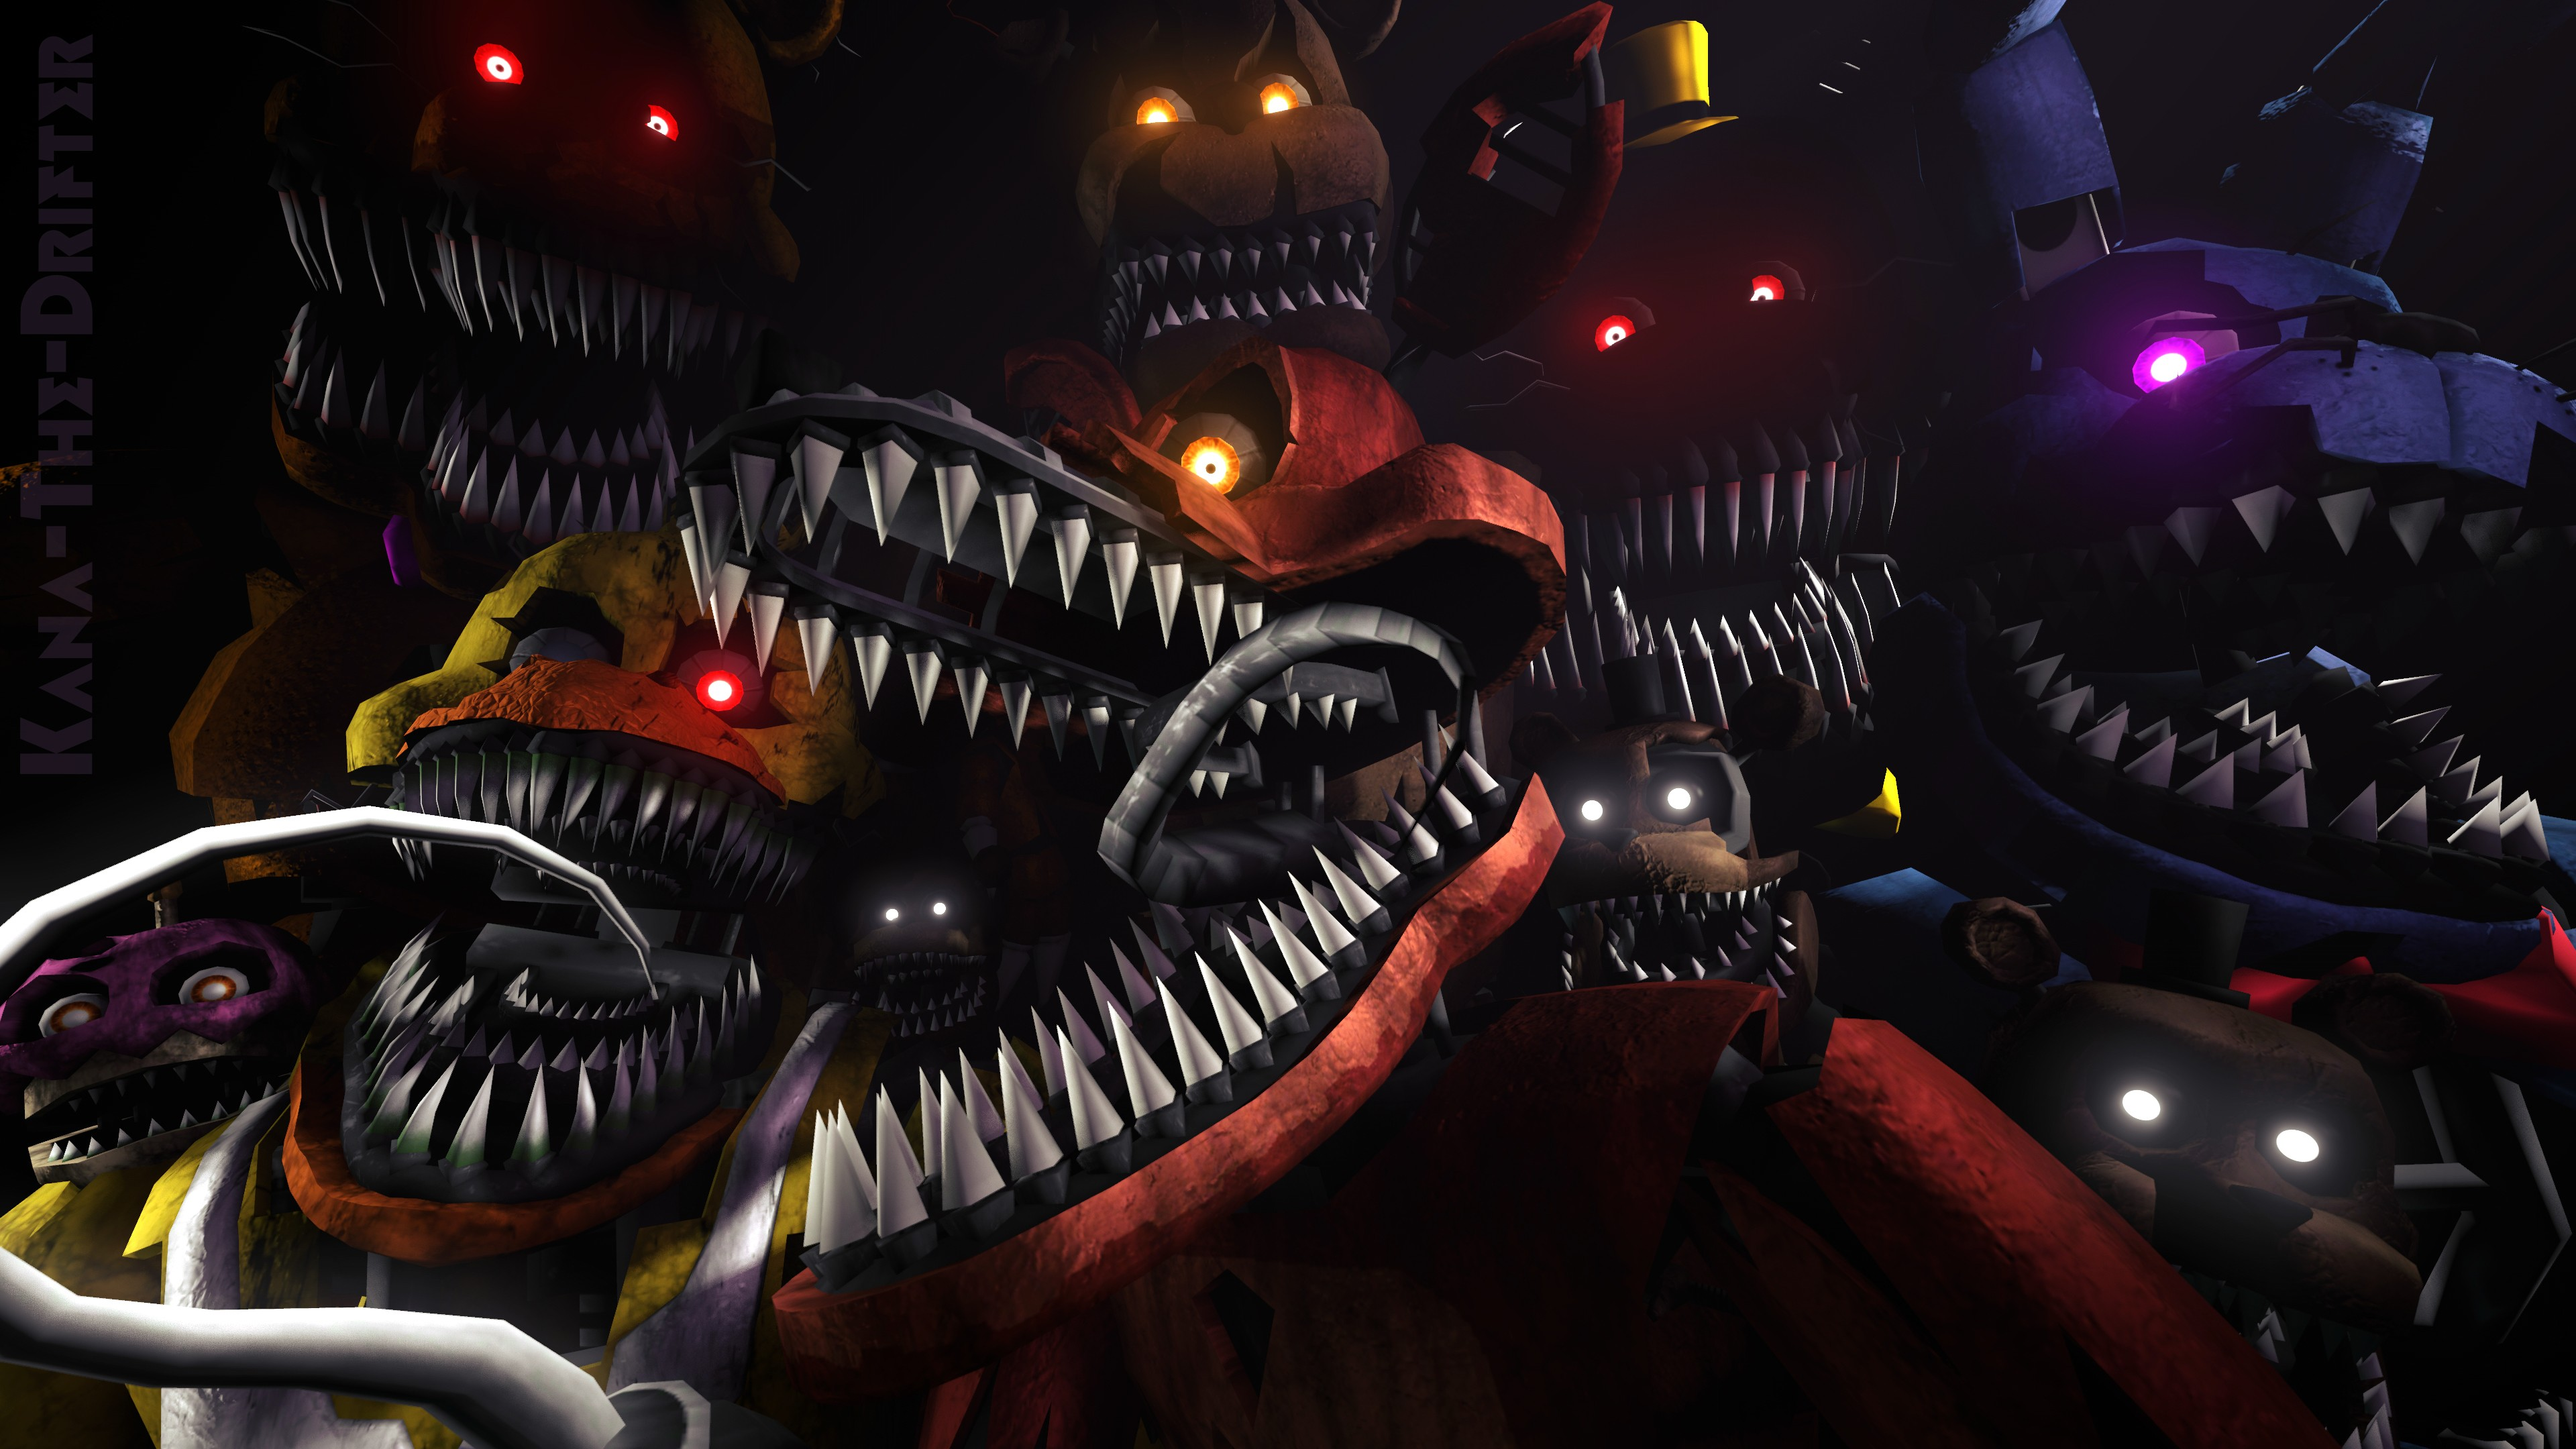 3840x2160 download free fnaf wallpaper 3840x2160